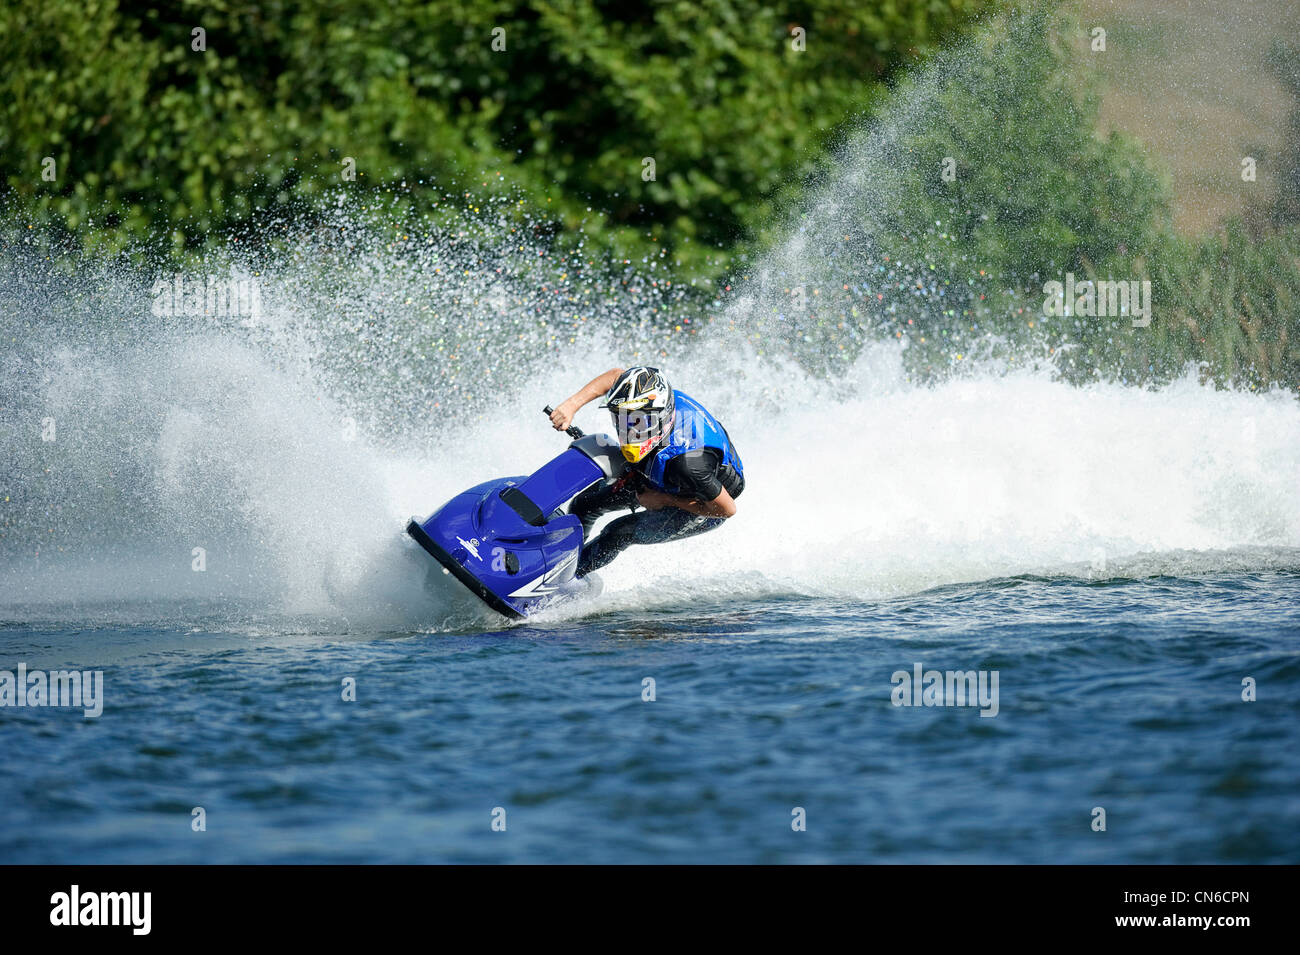 2b0dc830e3154 jet skiing across lake with water spray behind - Stock Image